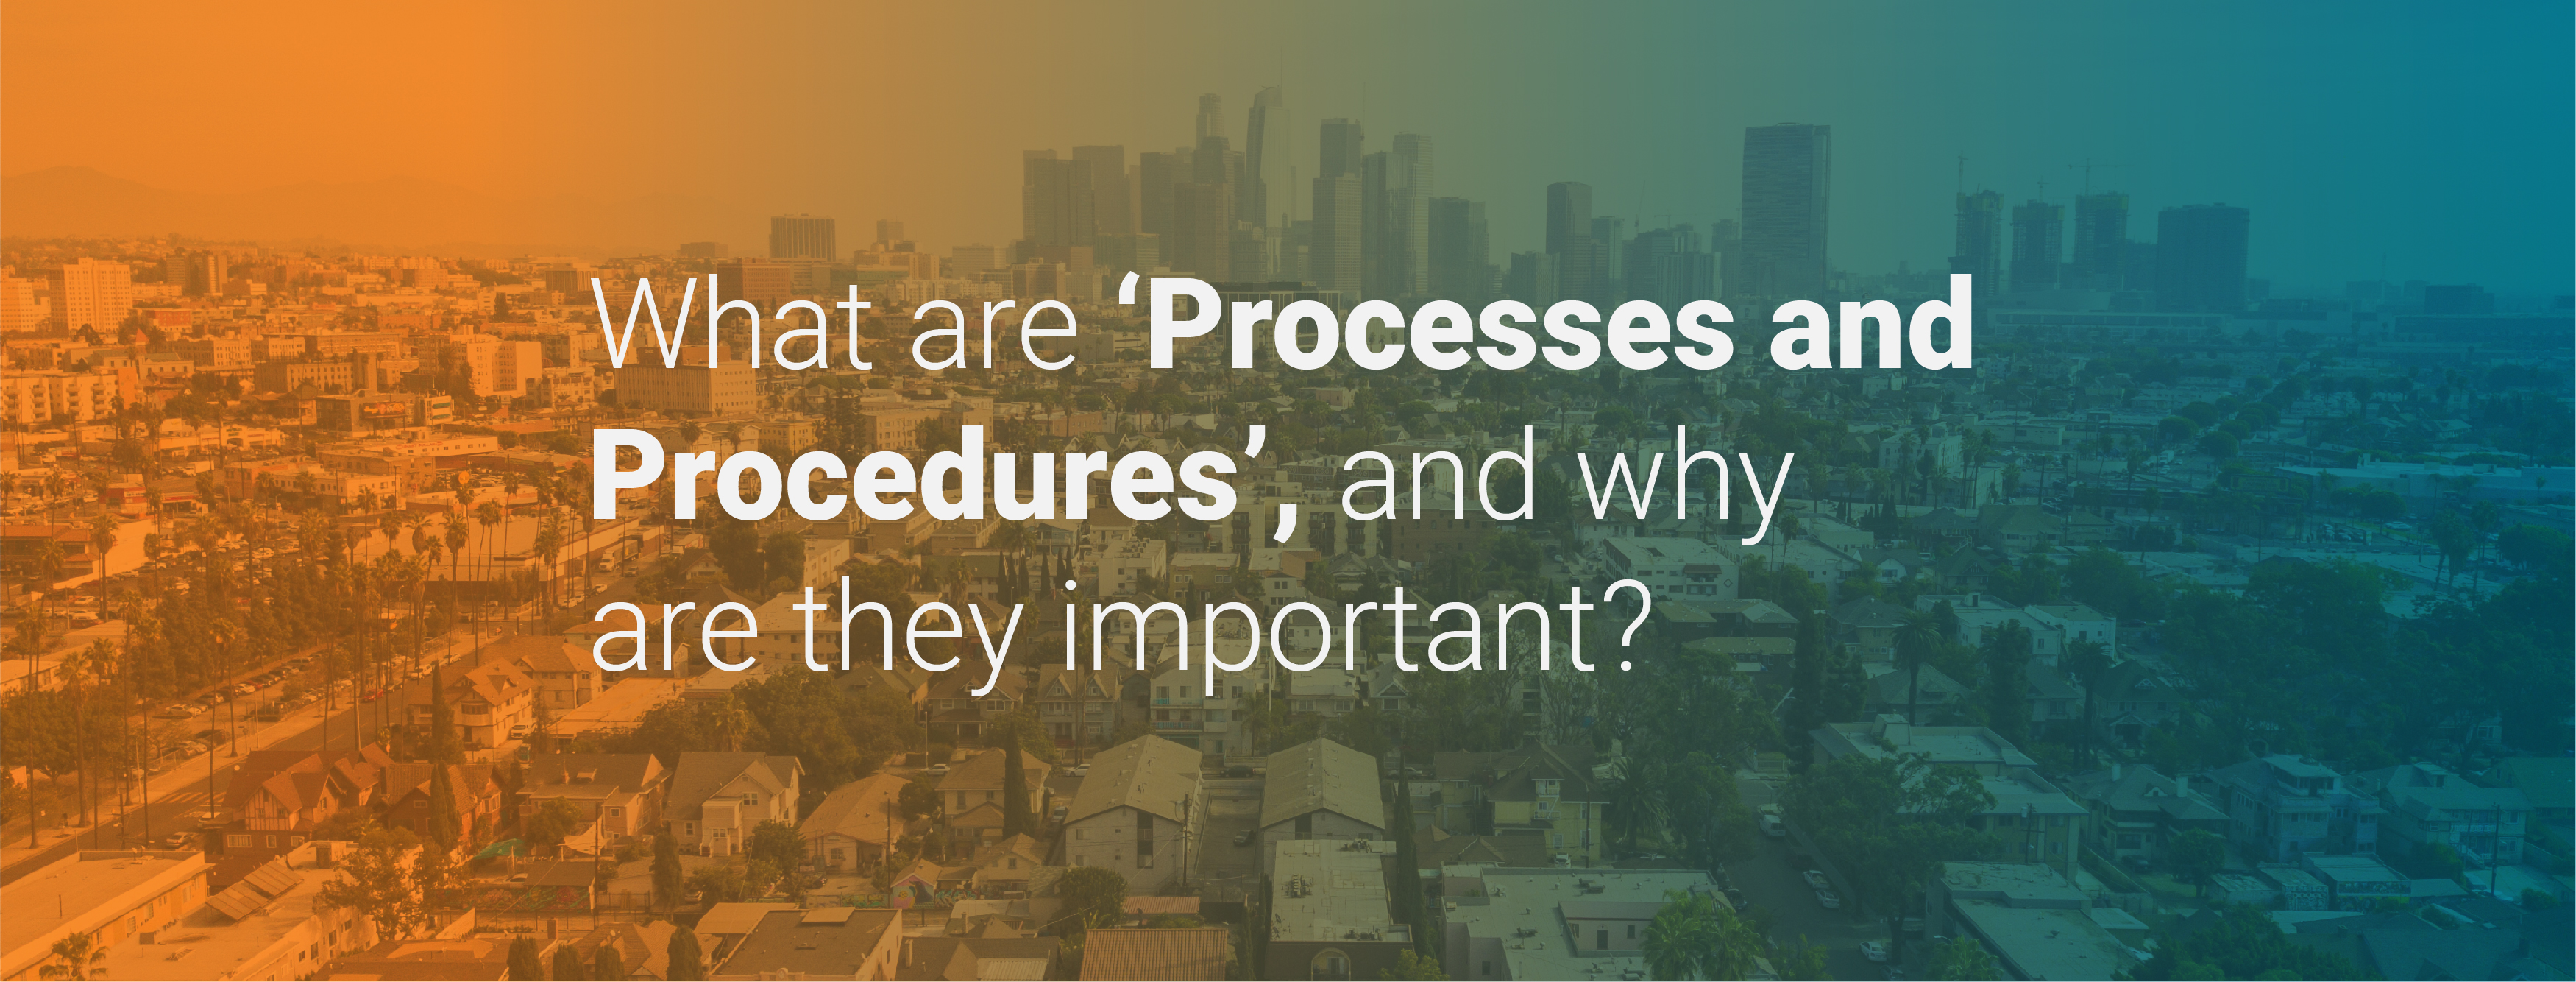 What Are 'Processes and Procedures', and Why Are They Important?